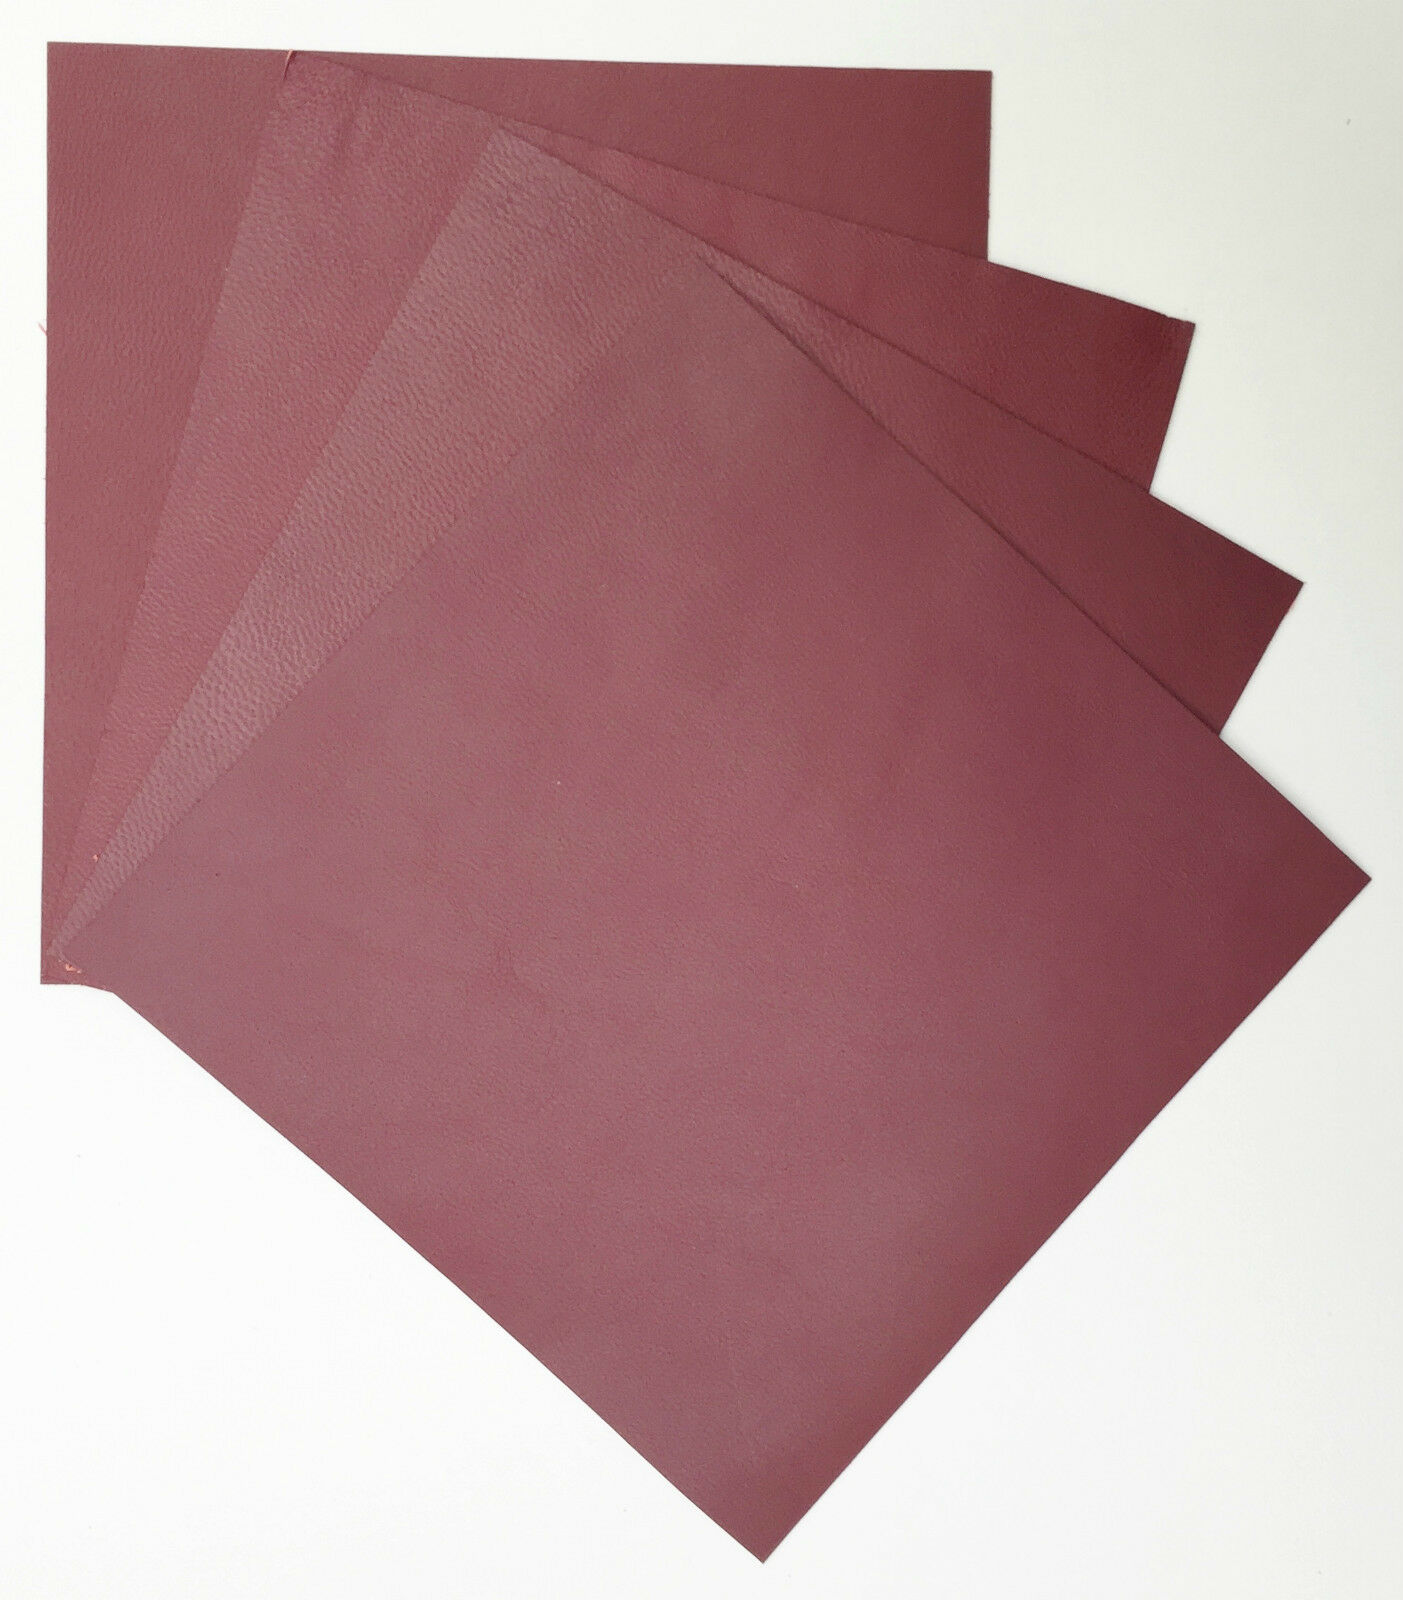 CRAFT PACK 6 @ 15CM X 15CM ASSORTED COLOURS LEATHER PIECES OF VEG-TAN SHEEPSKIN